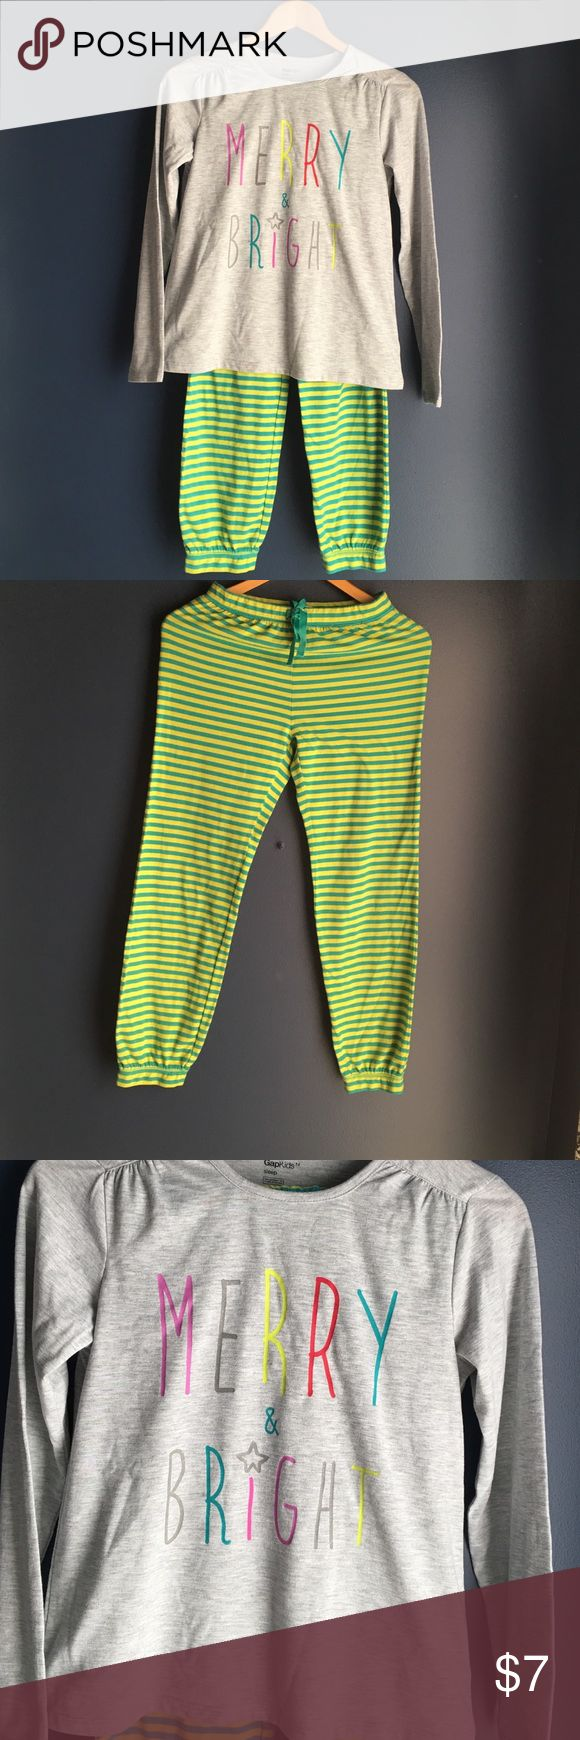 """GapKids Pajama Set So cute and comfy, these gap pajamas for kids are so fun. Striped pants and a gray T-shirt with """"Merry and Bright"""" in colorful letters. Shirt is size 14 pants are size 12. GapKids Pajamas Pajama Sets"""